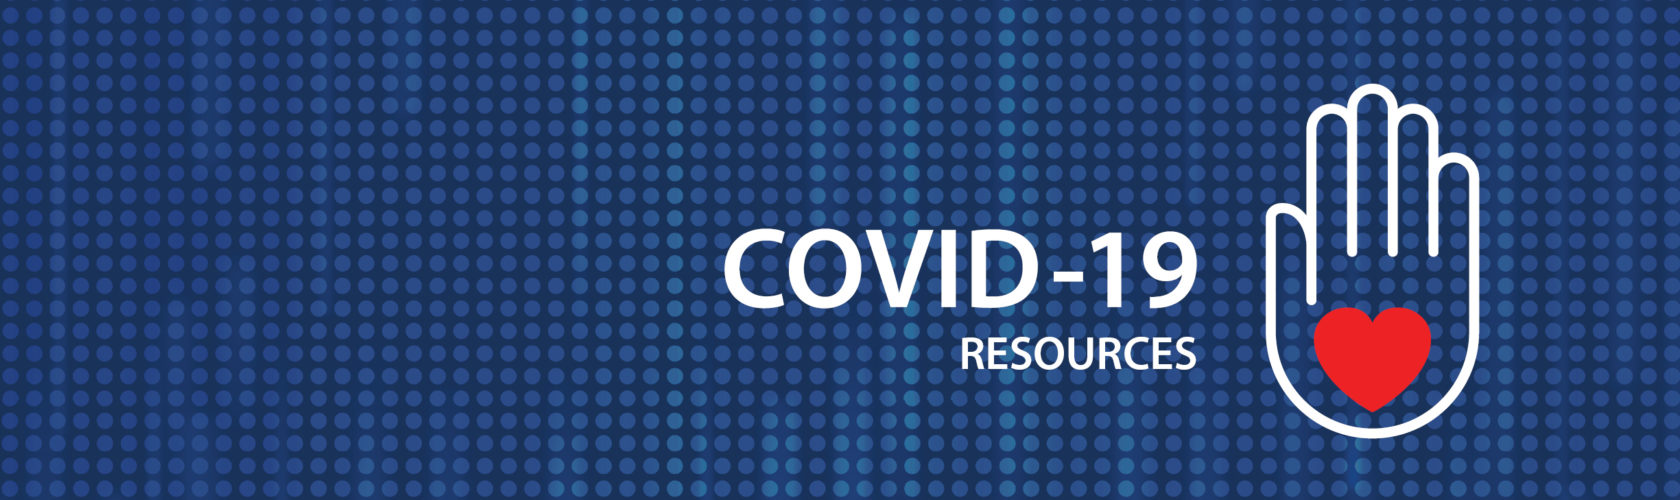 BC Covid Resources graphic